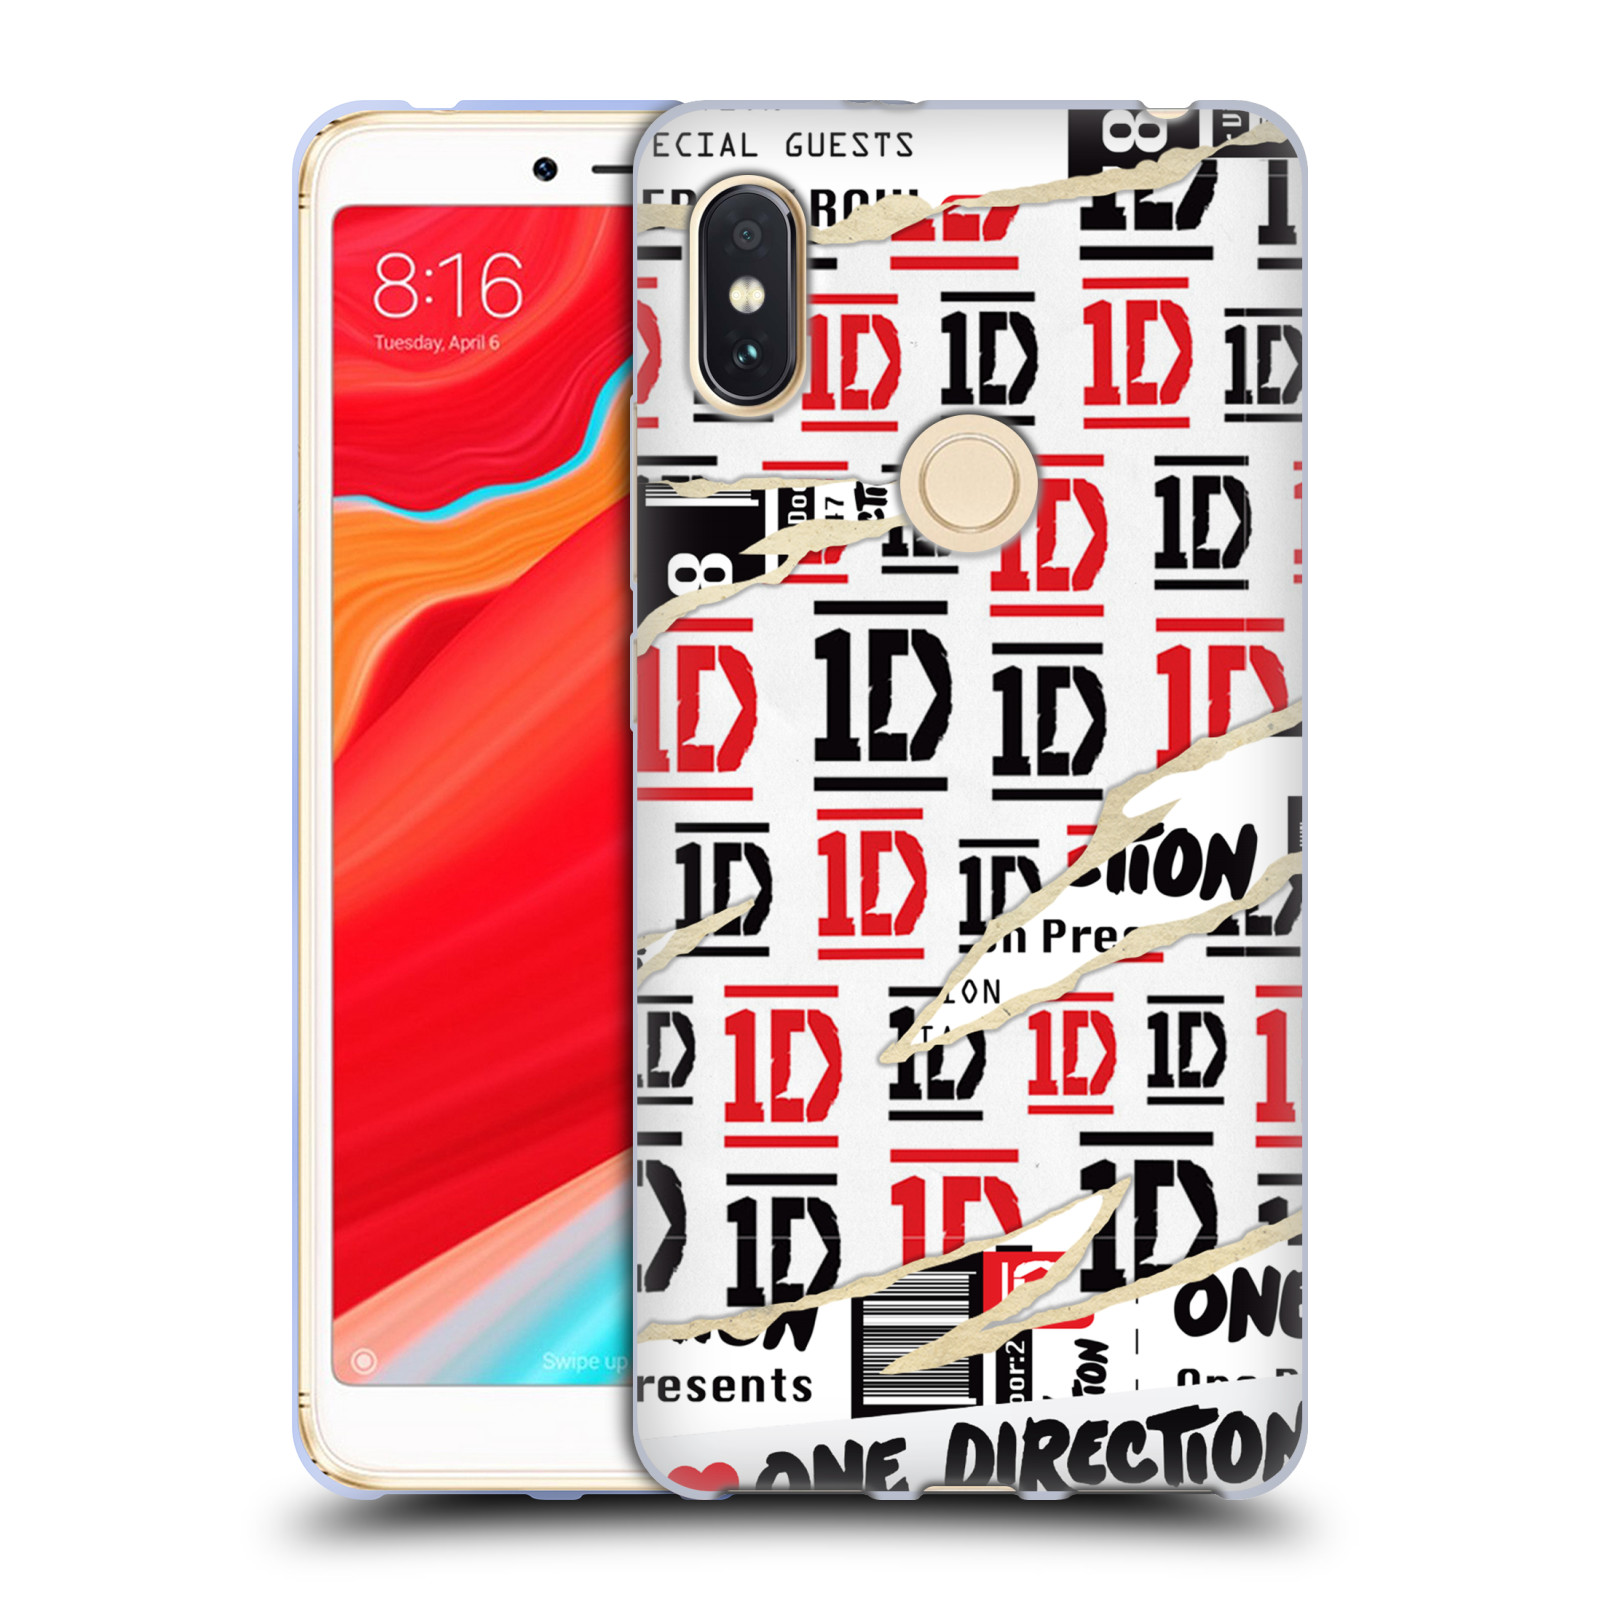 OFFICIAL ONE DIRECTION TICKET SOFT GEL CASE FOR XIAOMI PHONES